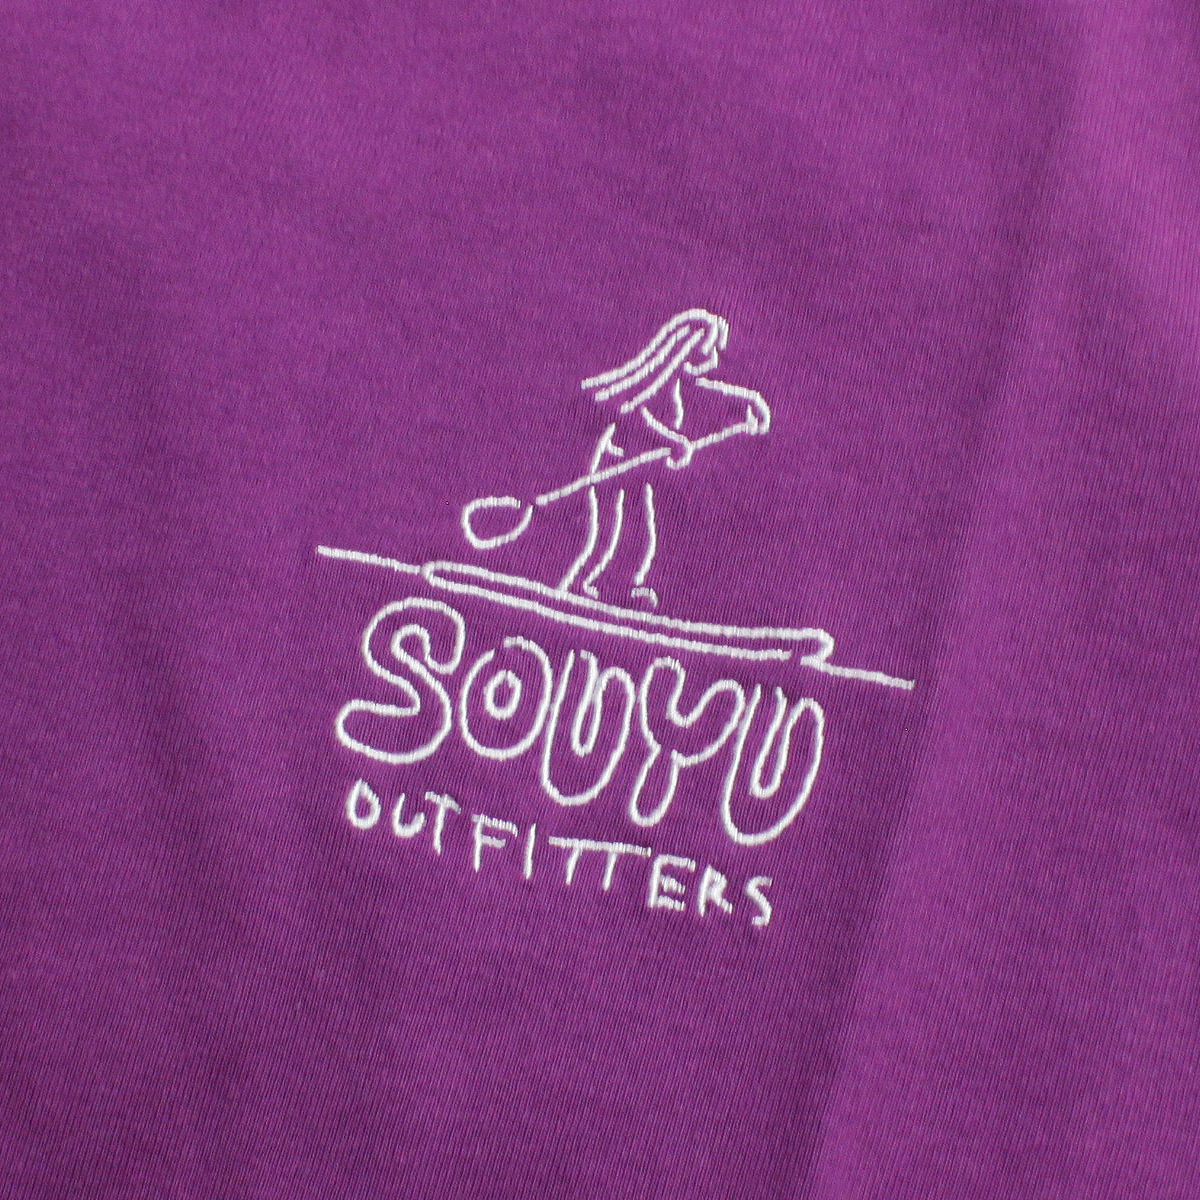 SOUYU OUTFITTERS ソーユーアウトフィッターズ SOUYUMAN TEE